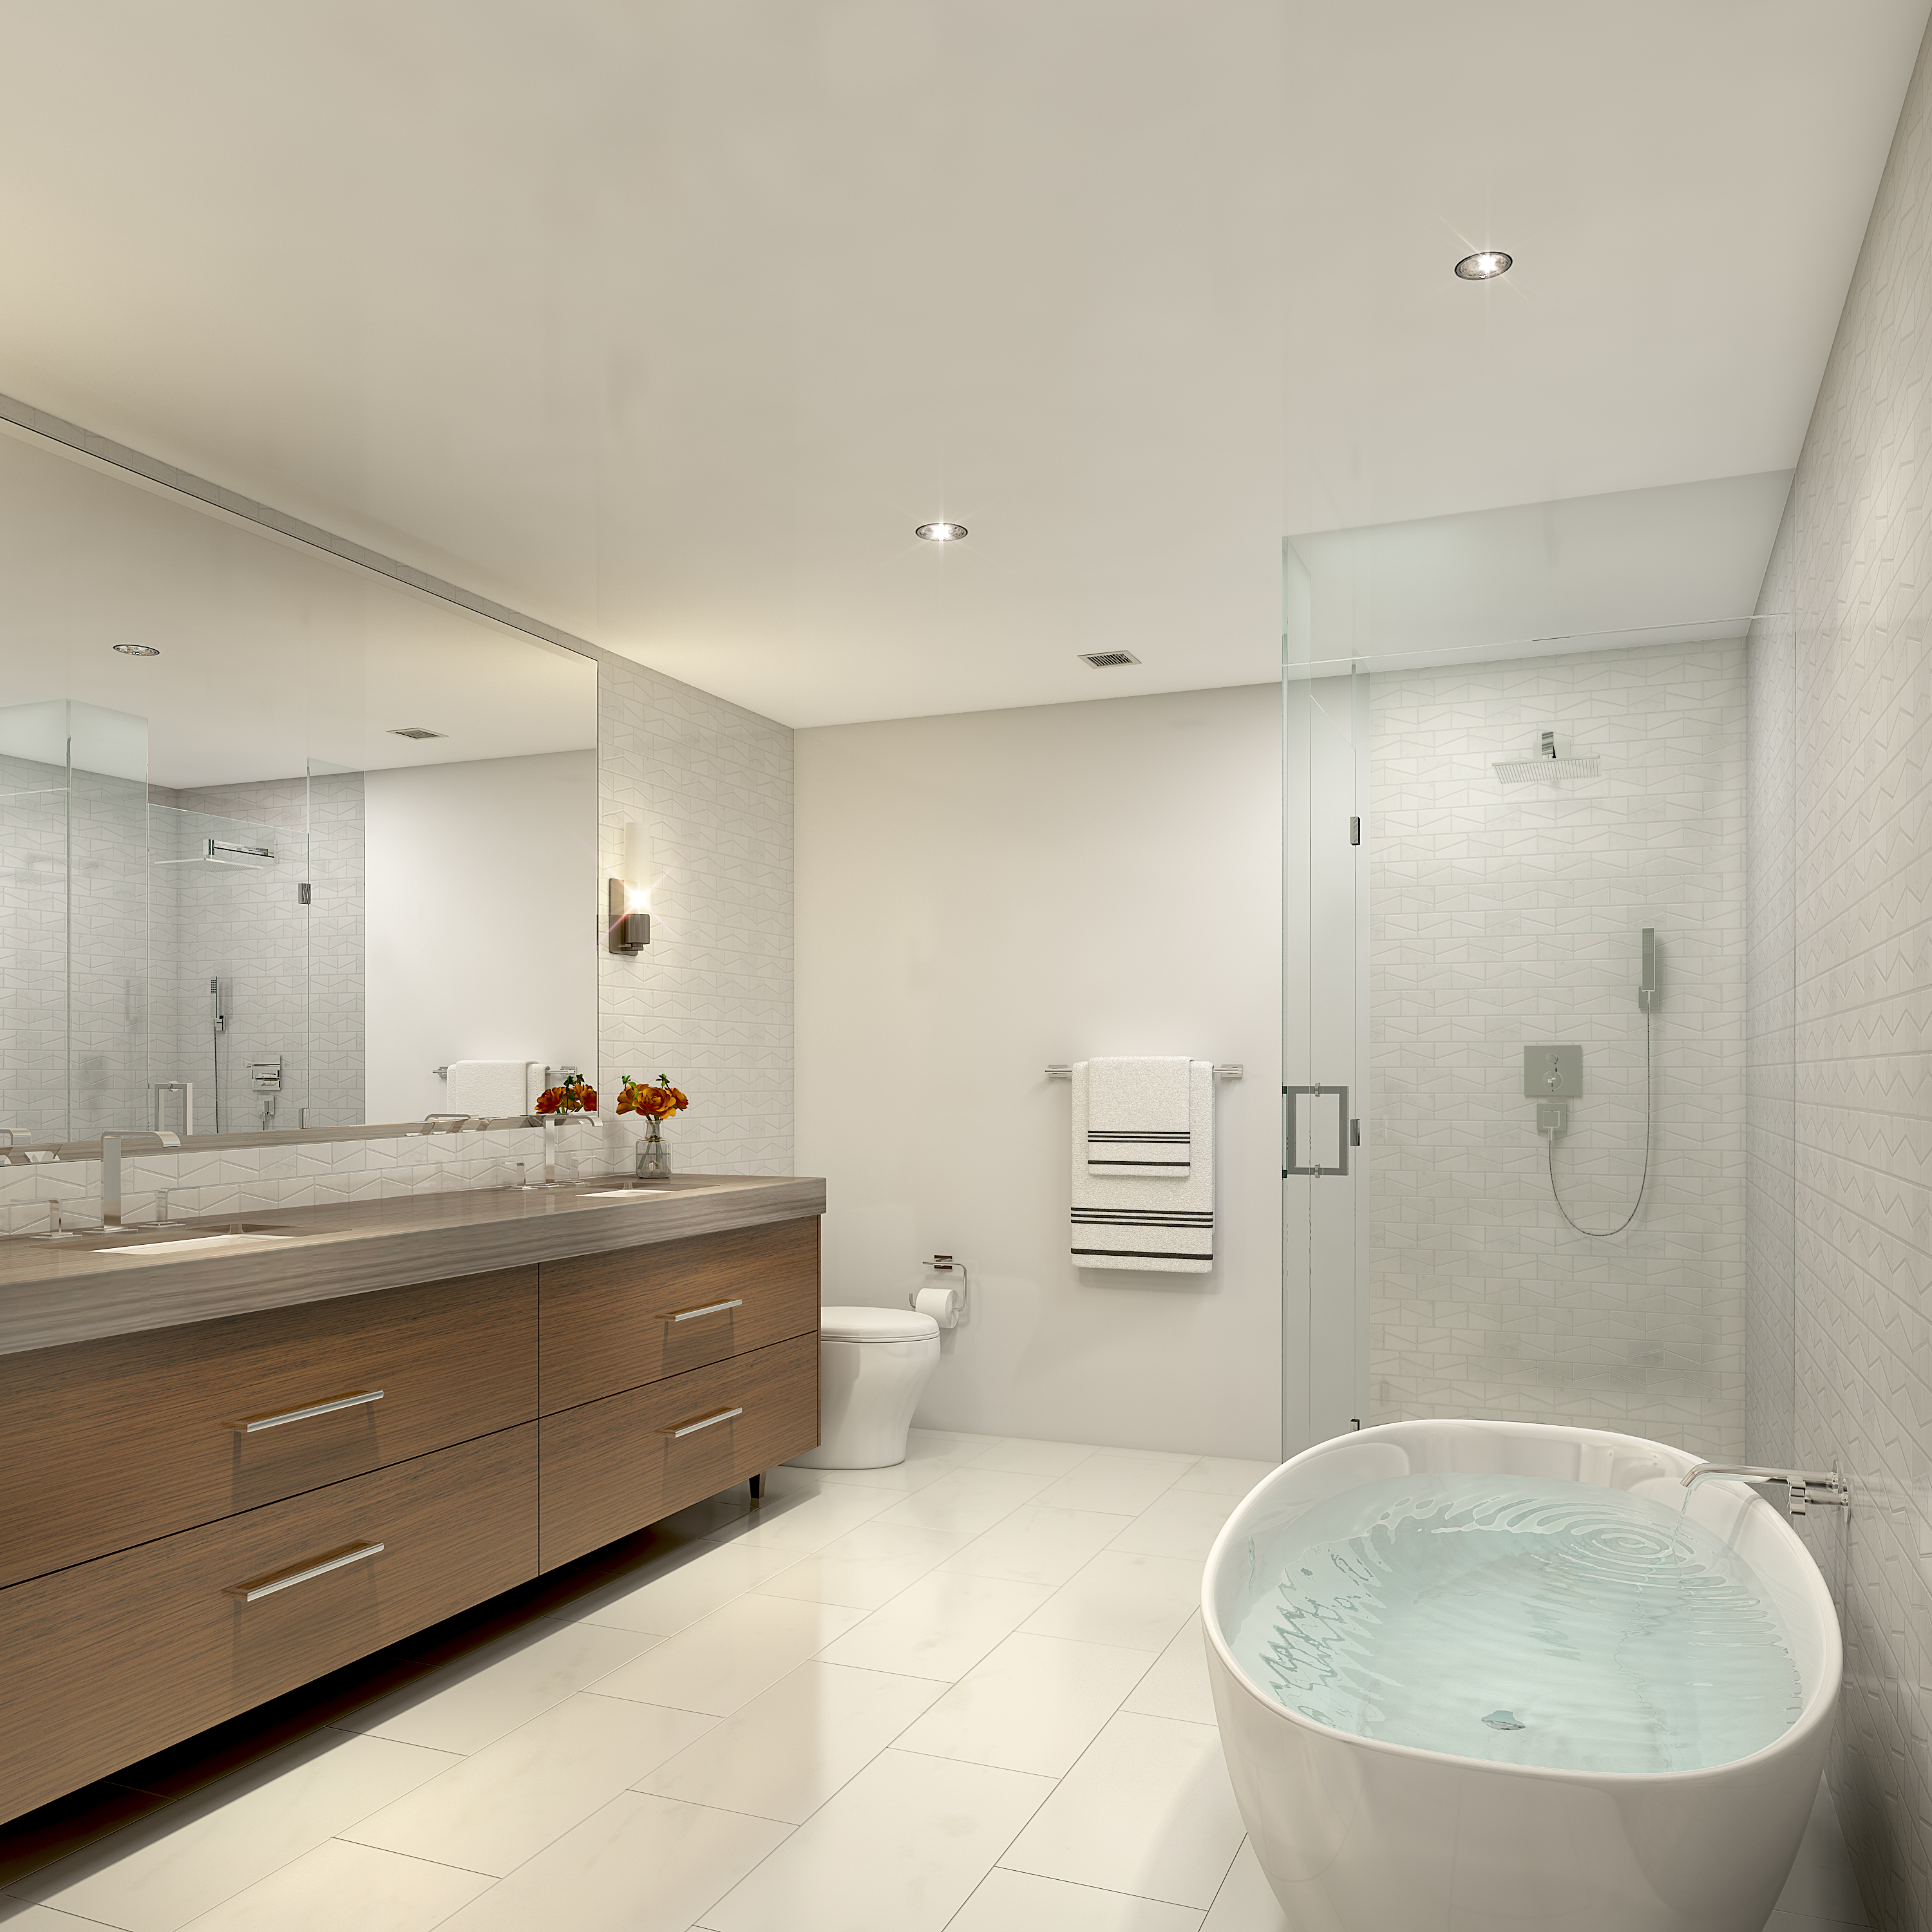 19A_Suite Master Bathroom_8224_2015-10-2